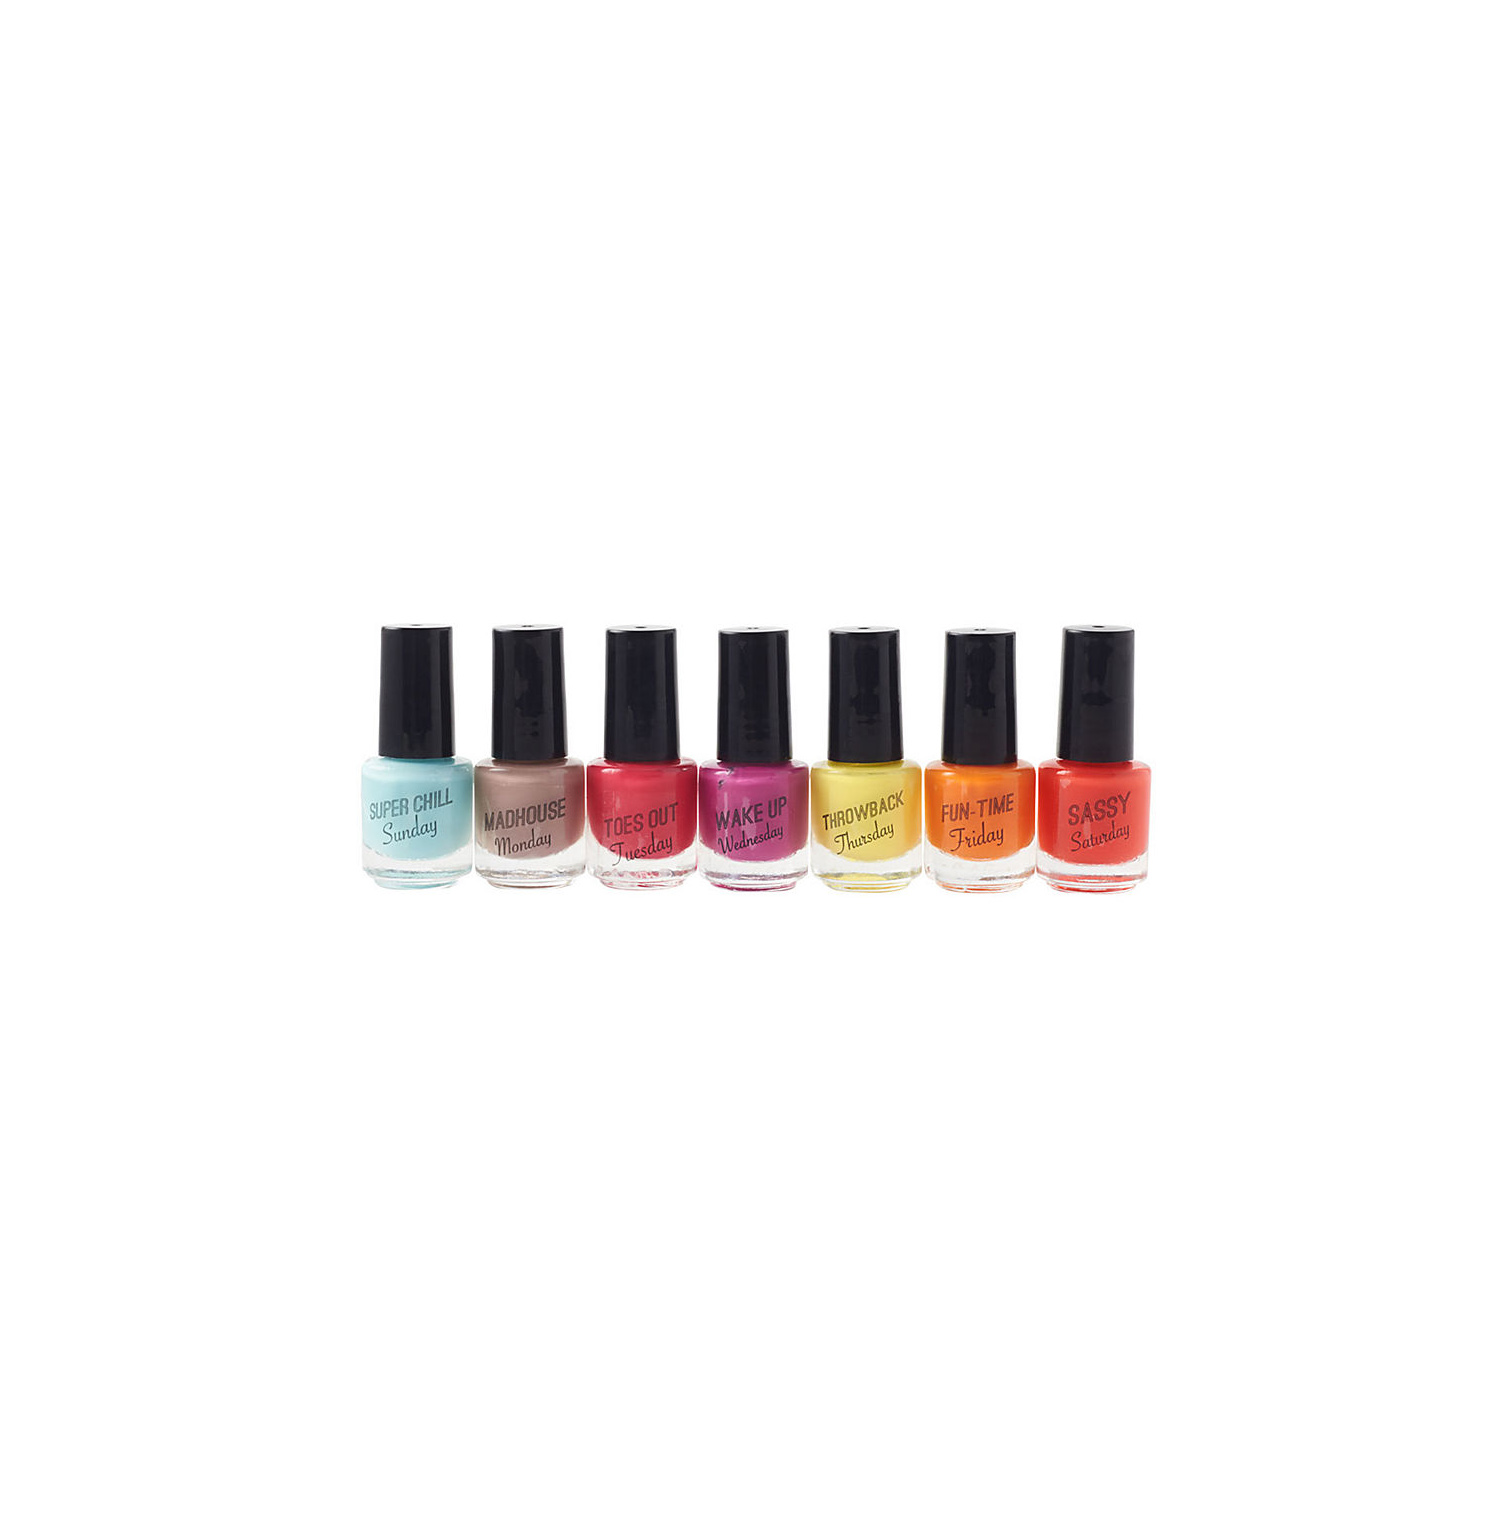 Daily Mood Maker Scented Nail Polish set